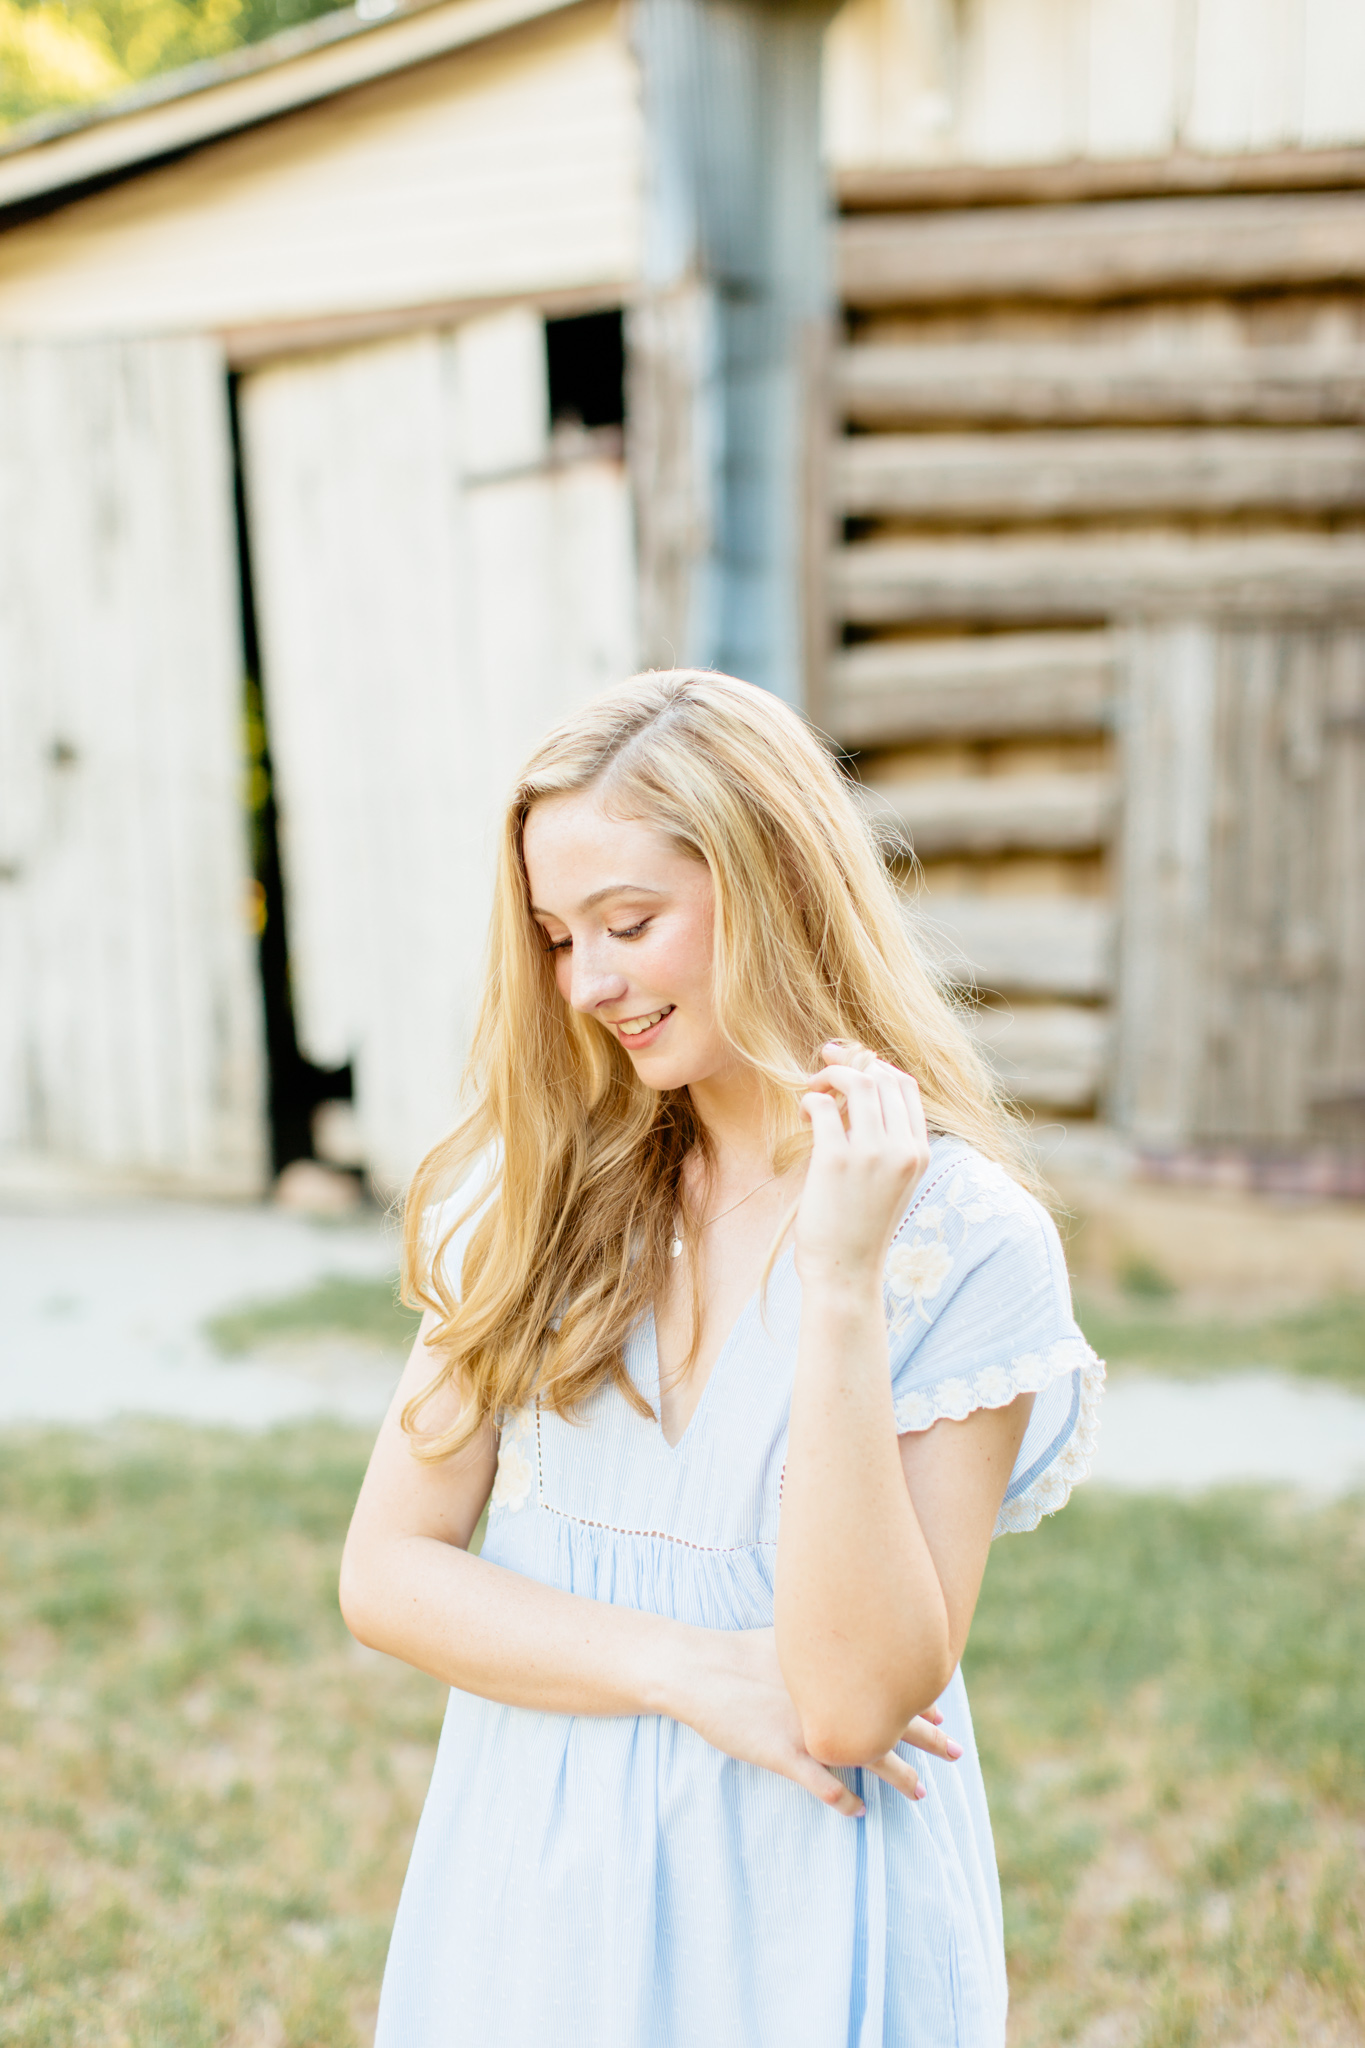 Alexa-Vossler-Photo_Dallas-Senior-Photographer_Senior-Photoshoot-at-Penn-Farm_Ellie-2.jpg